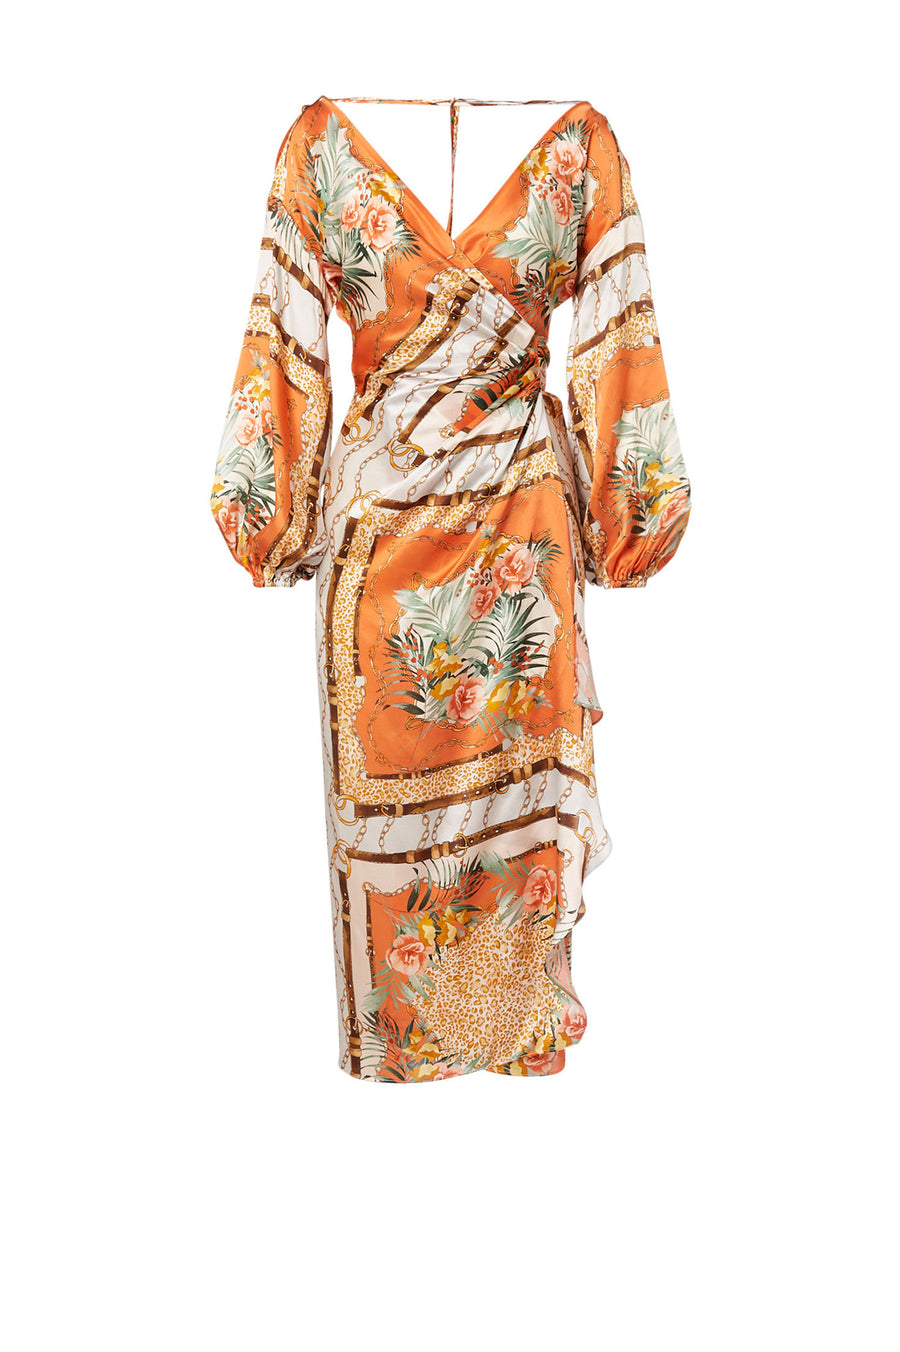 Silk Animal Scarf Print Dress Apricot, midi length, deep v- neckline, back shoulder tie closure, waist tie, blouson sleeves